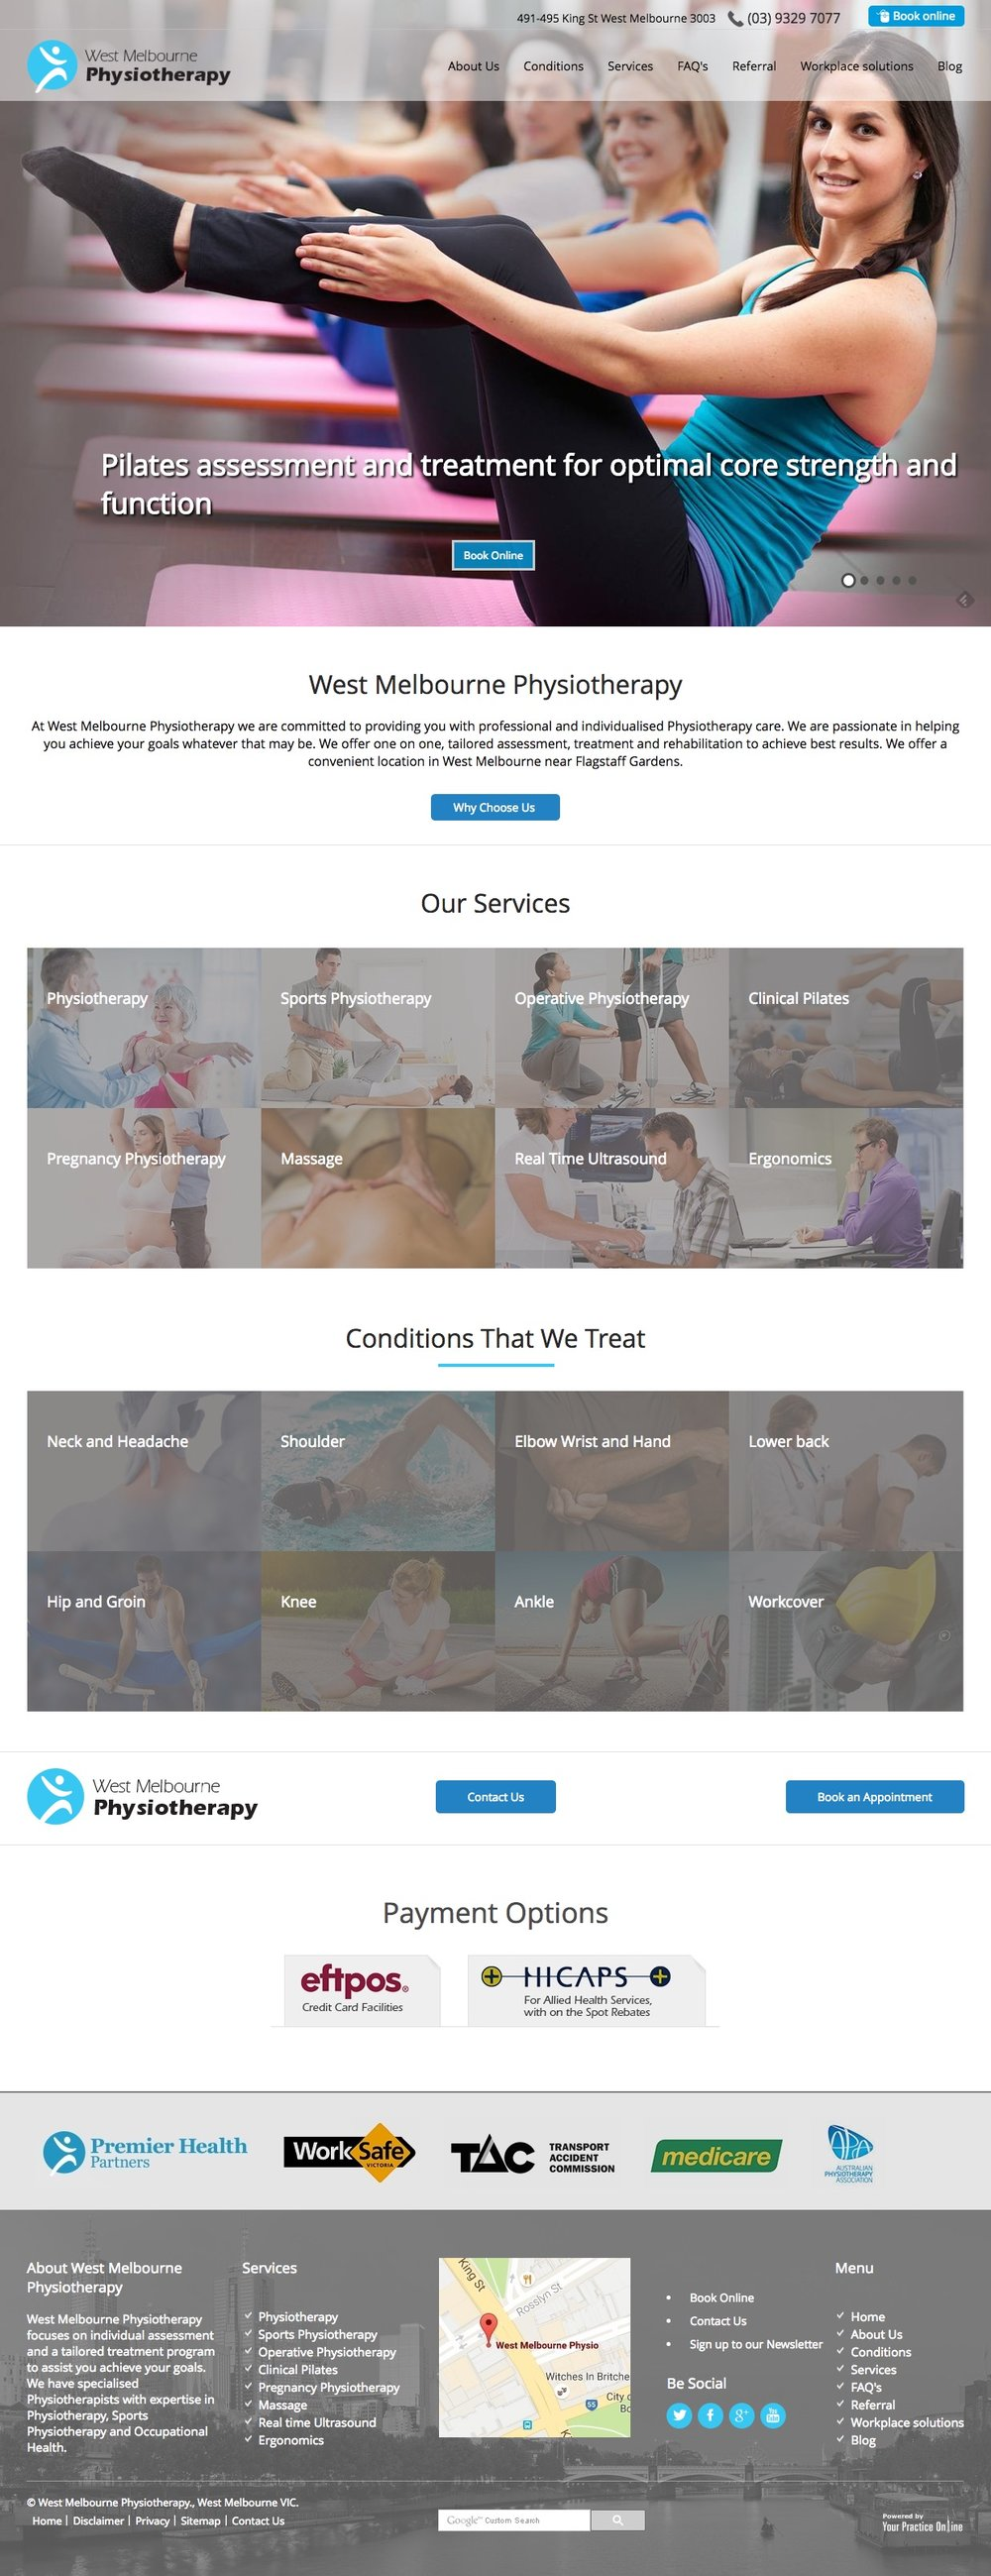 Melbourne Physiotherapy Website